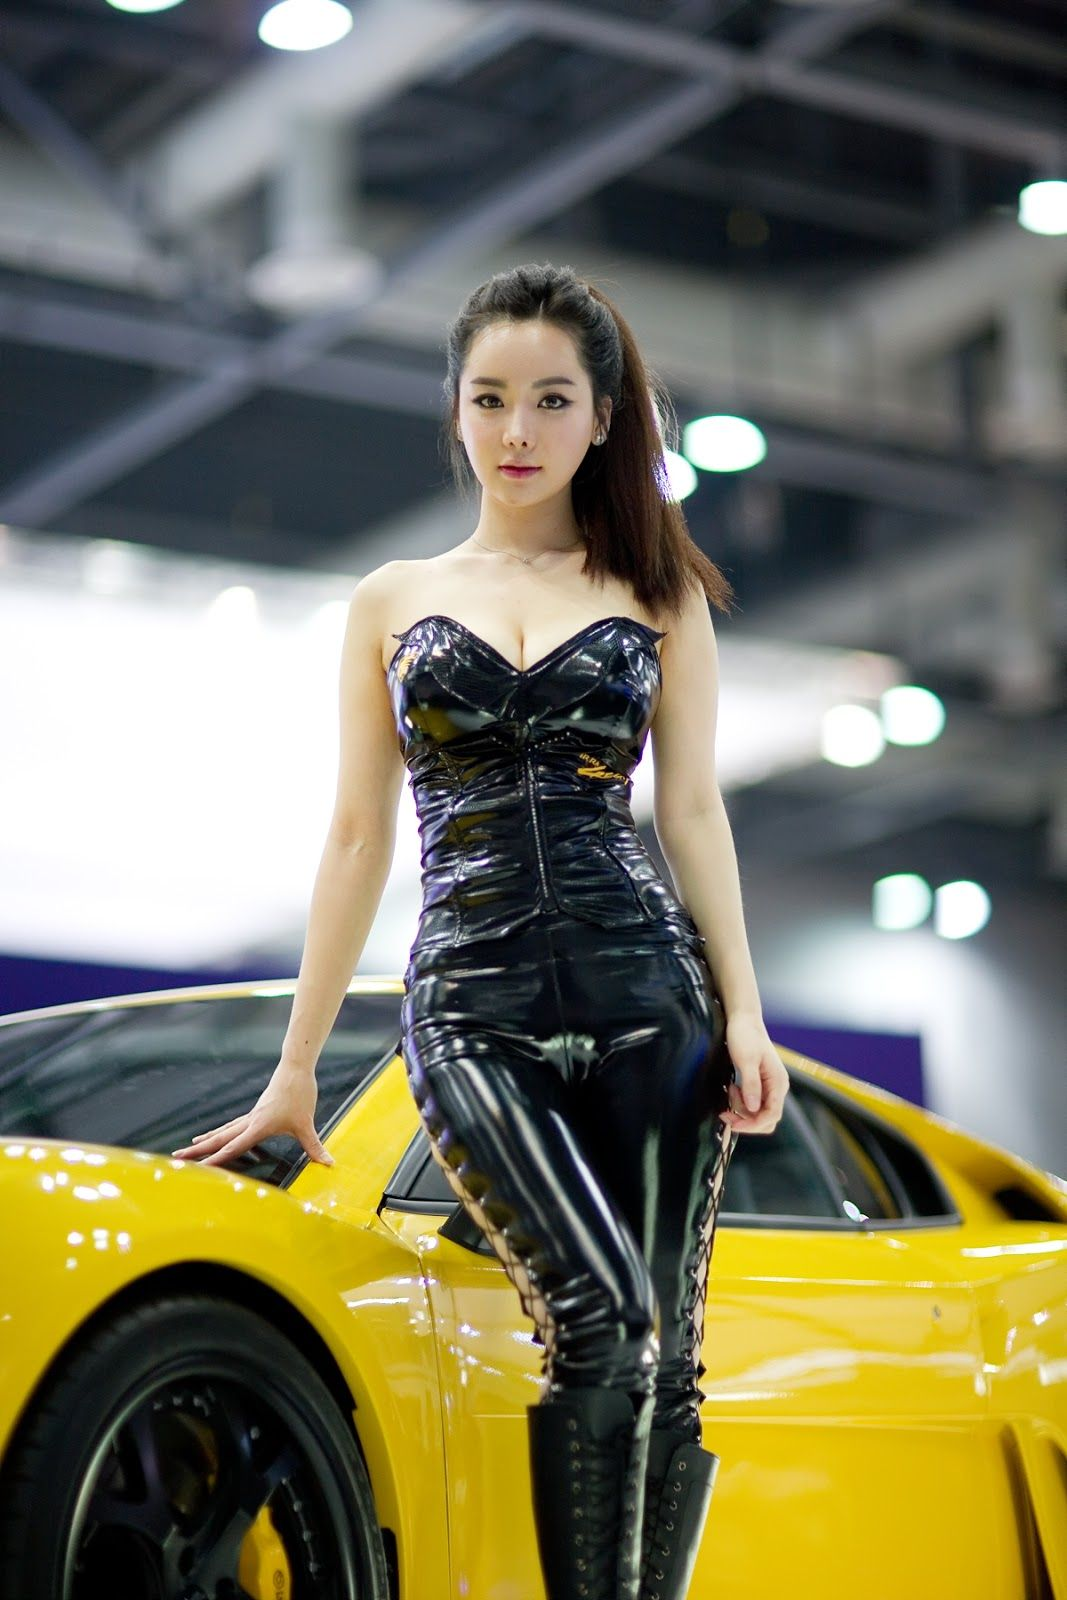 chinese-latex-girl-increase-male-sperm